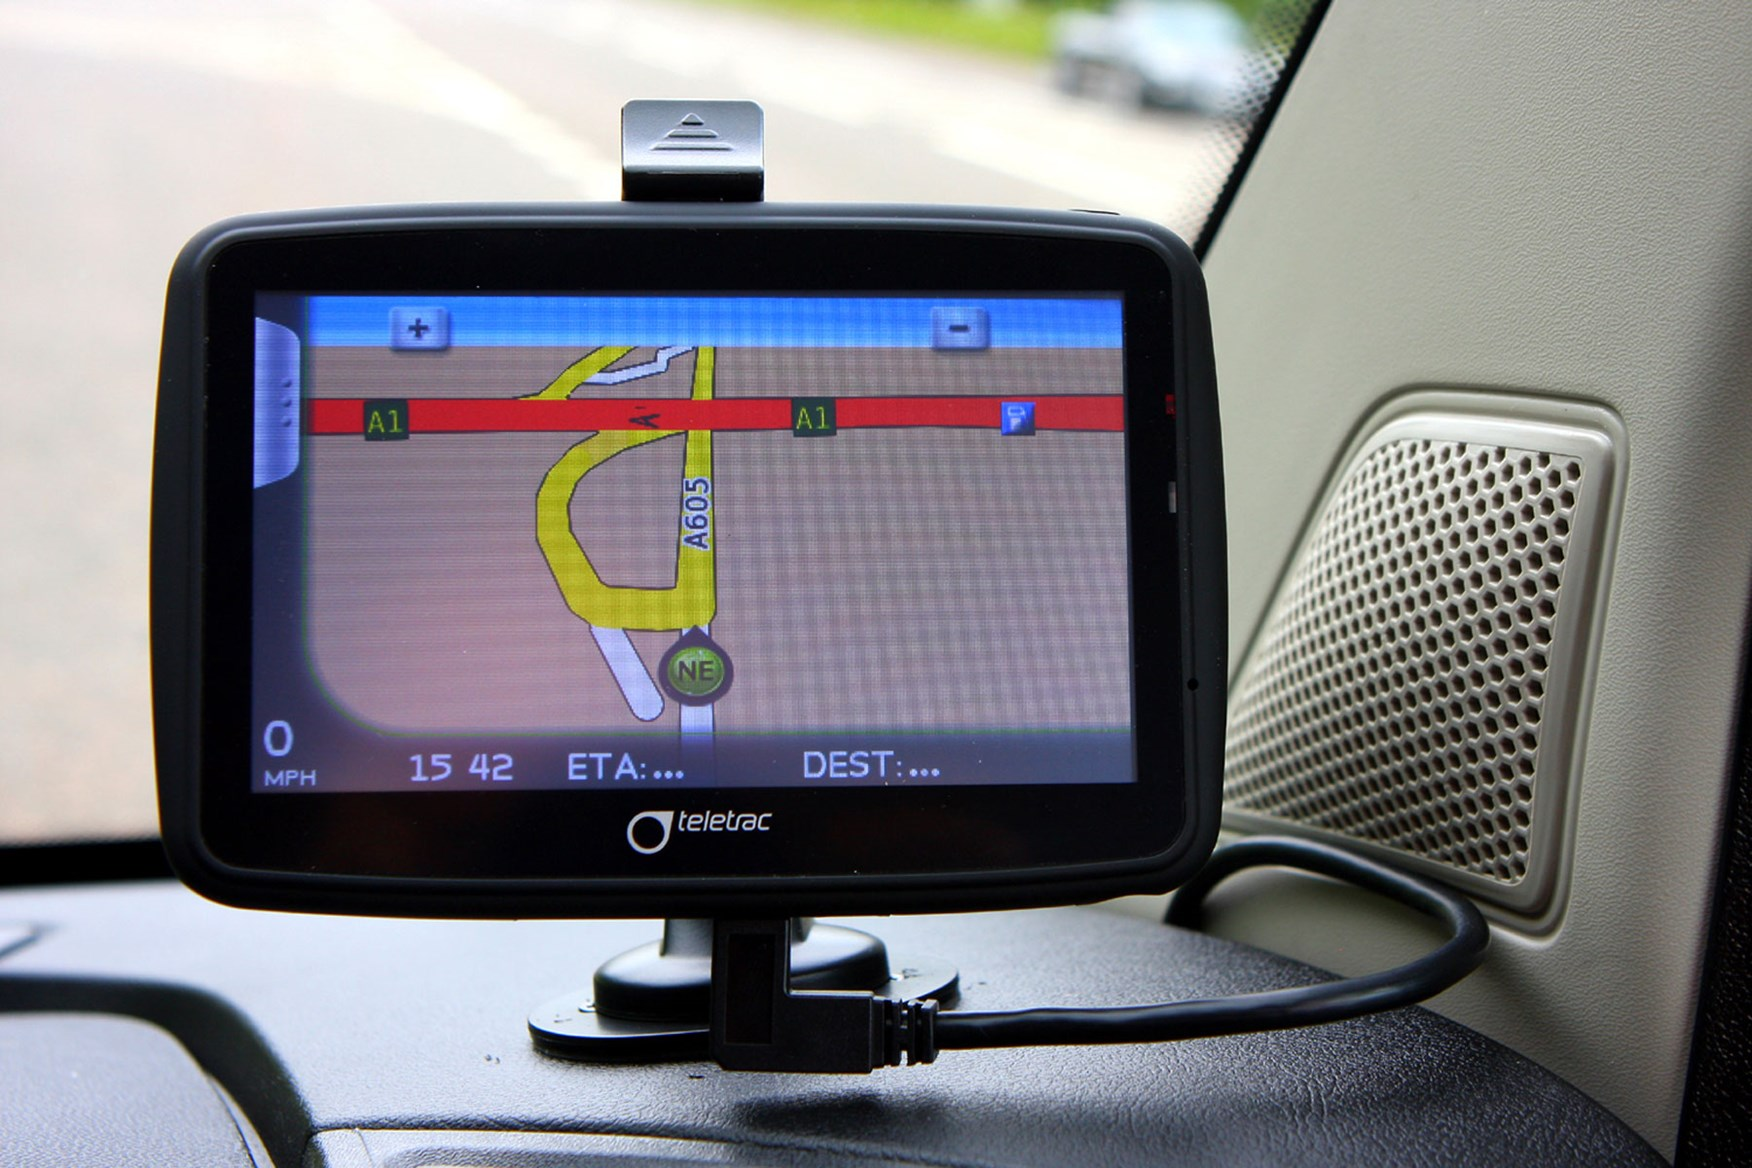 Citroen Relay 2.2 HDi 130 review - Teletrac sat-nav